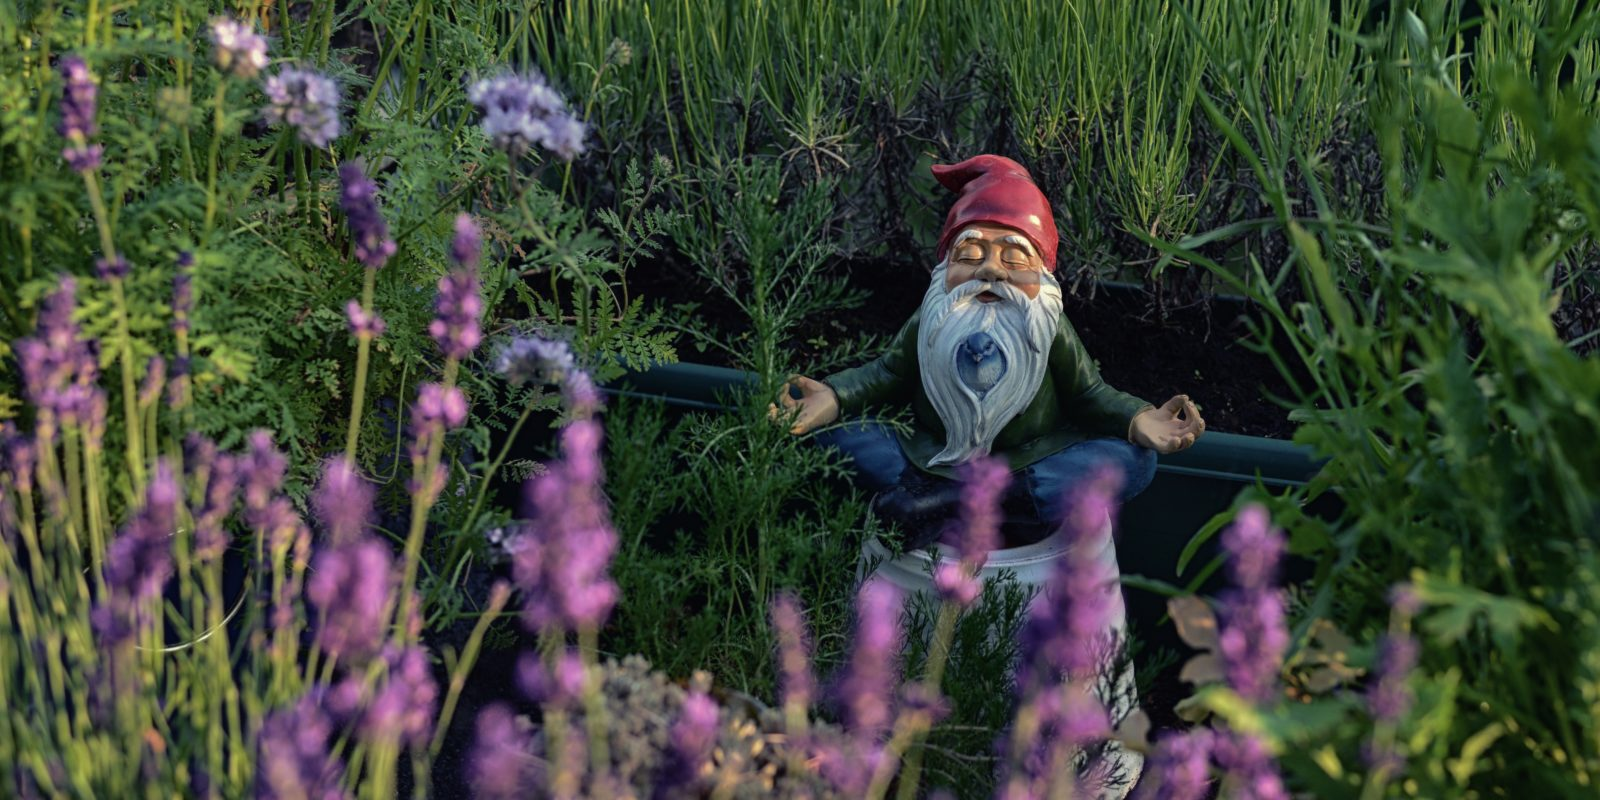 Gnome in water garden meditating